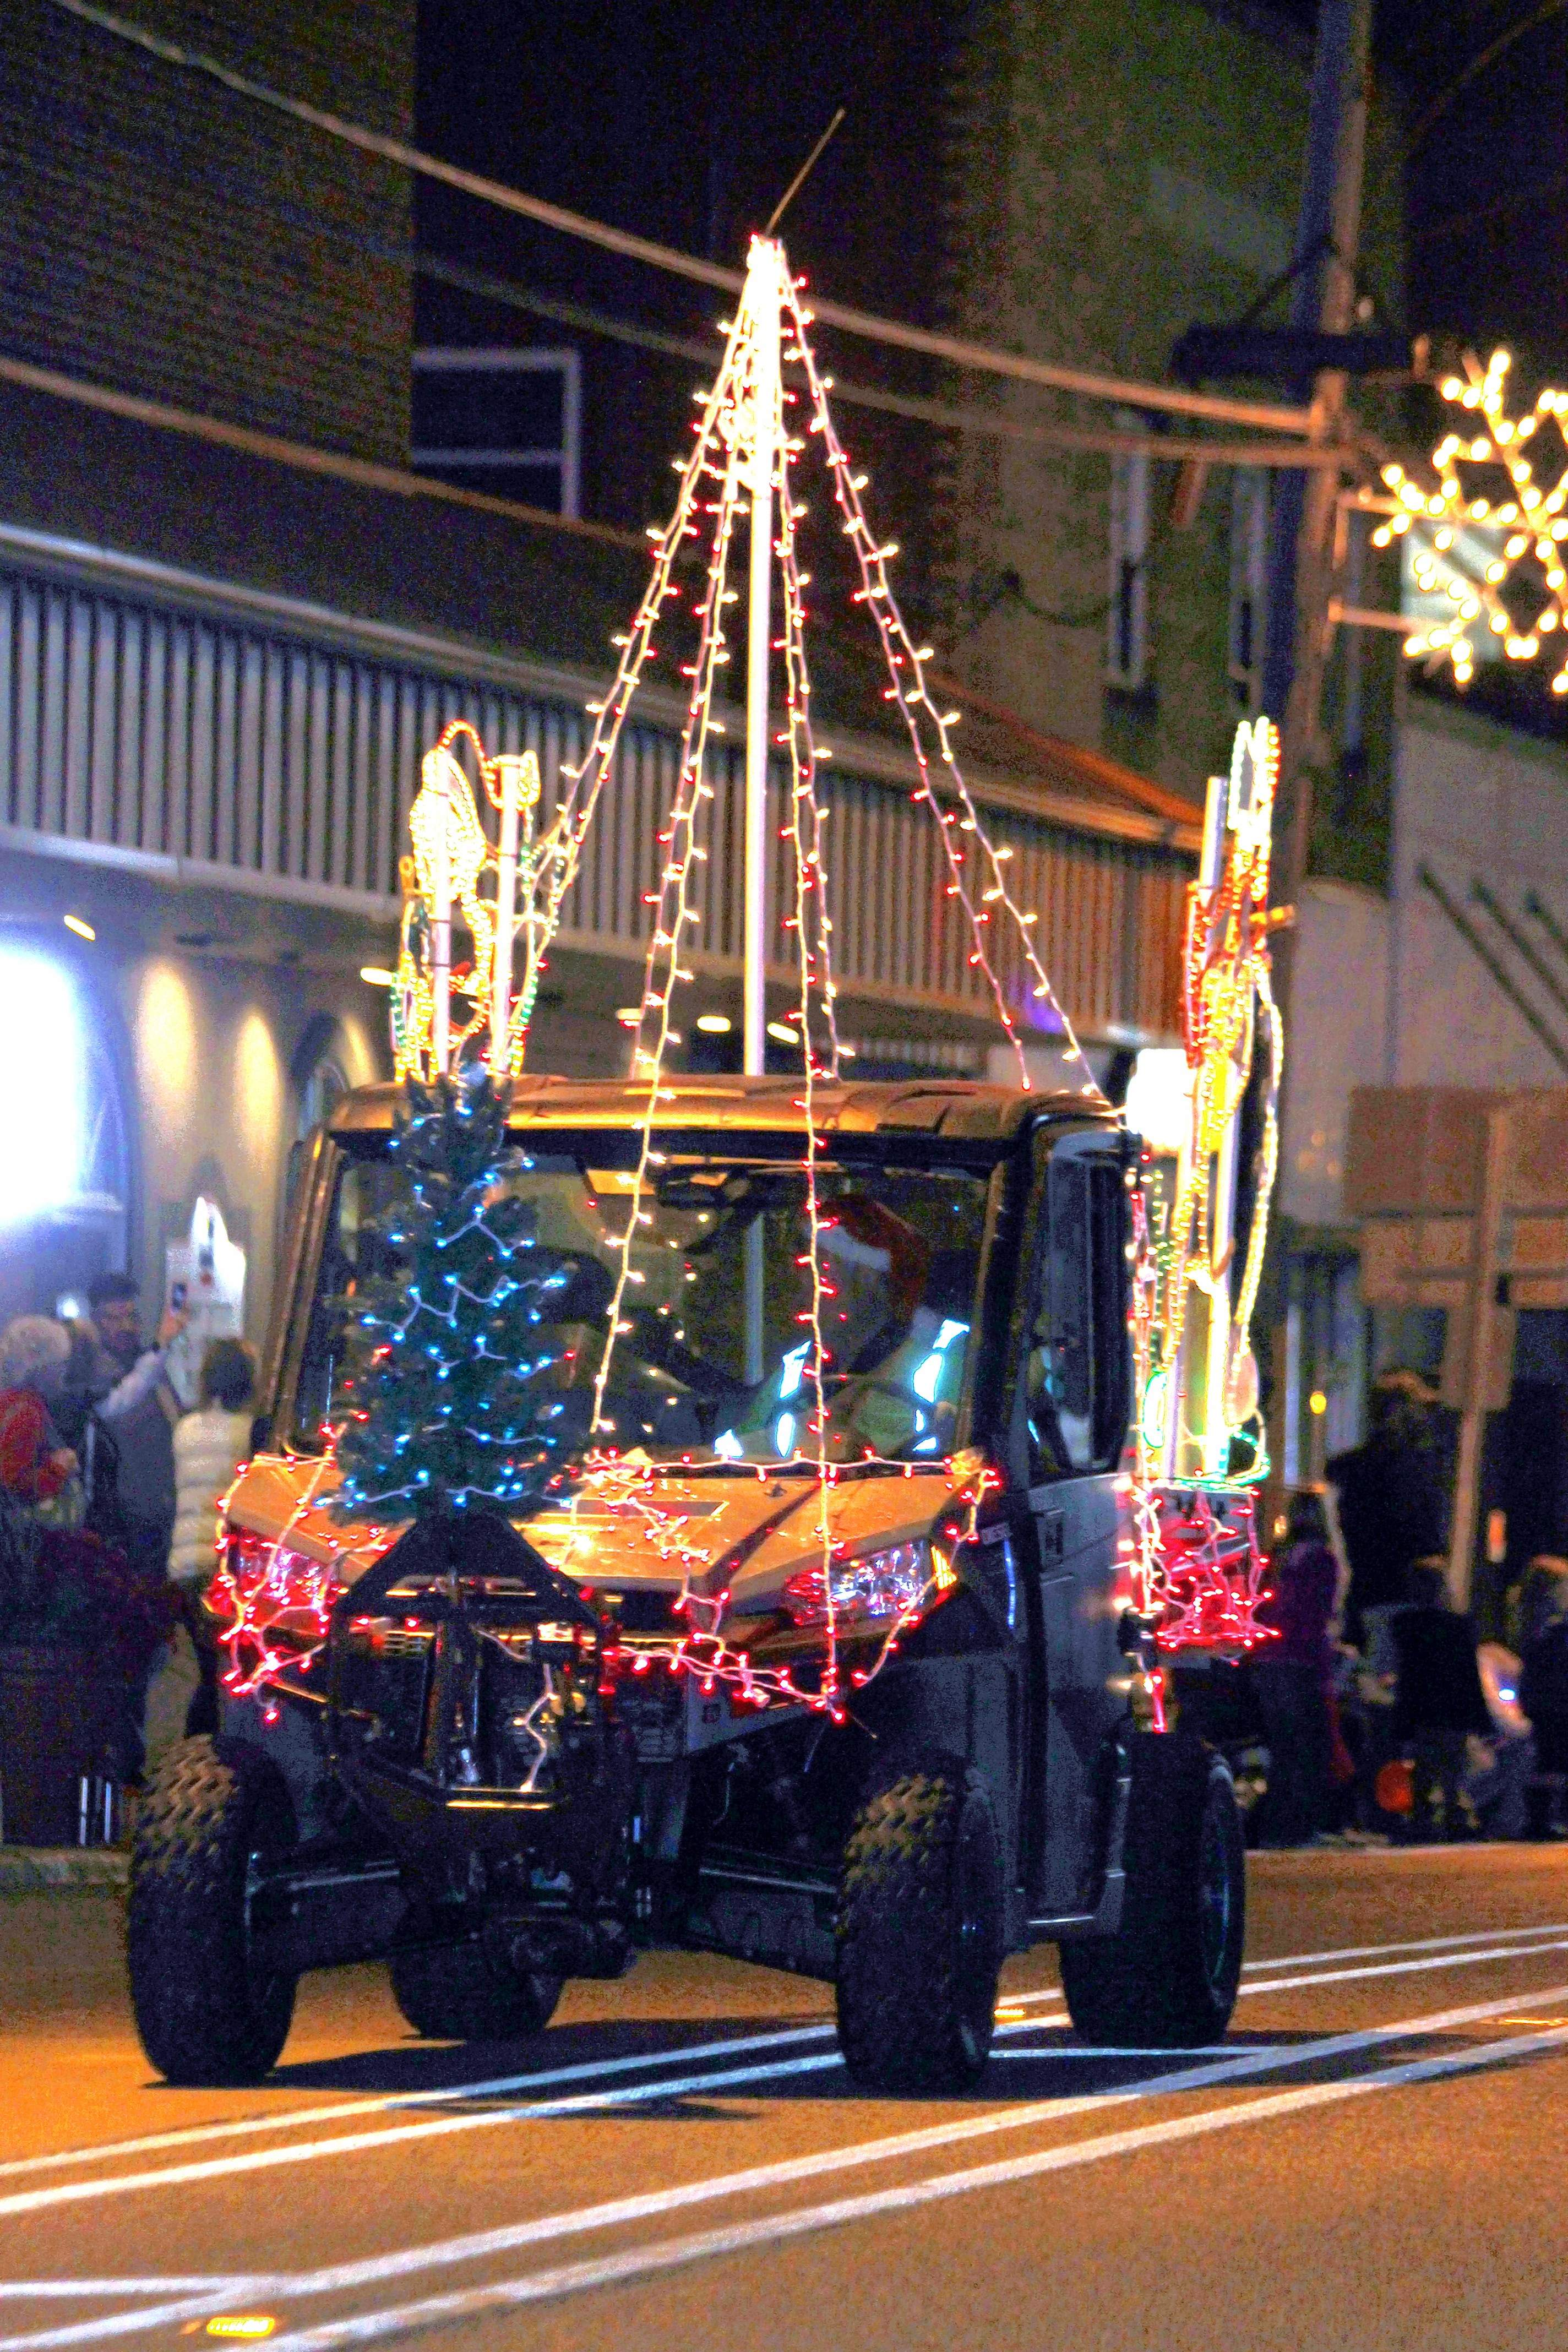 The parade did not have a specific theme this year, allowing for a variety of entries with lighted displays.